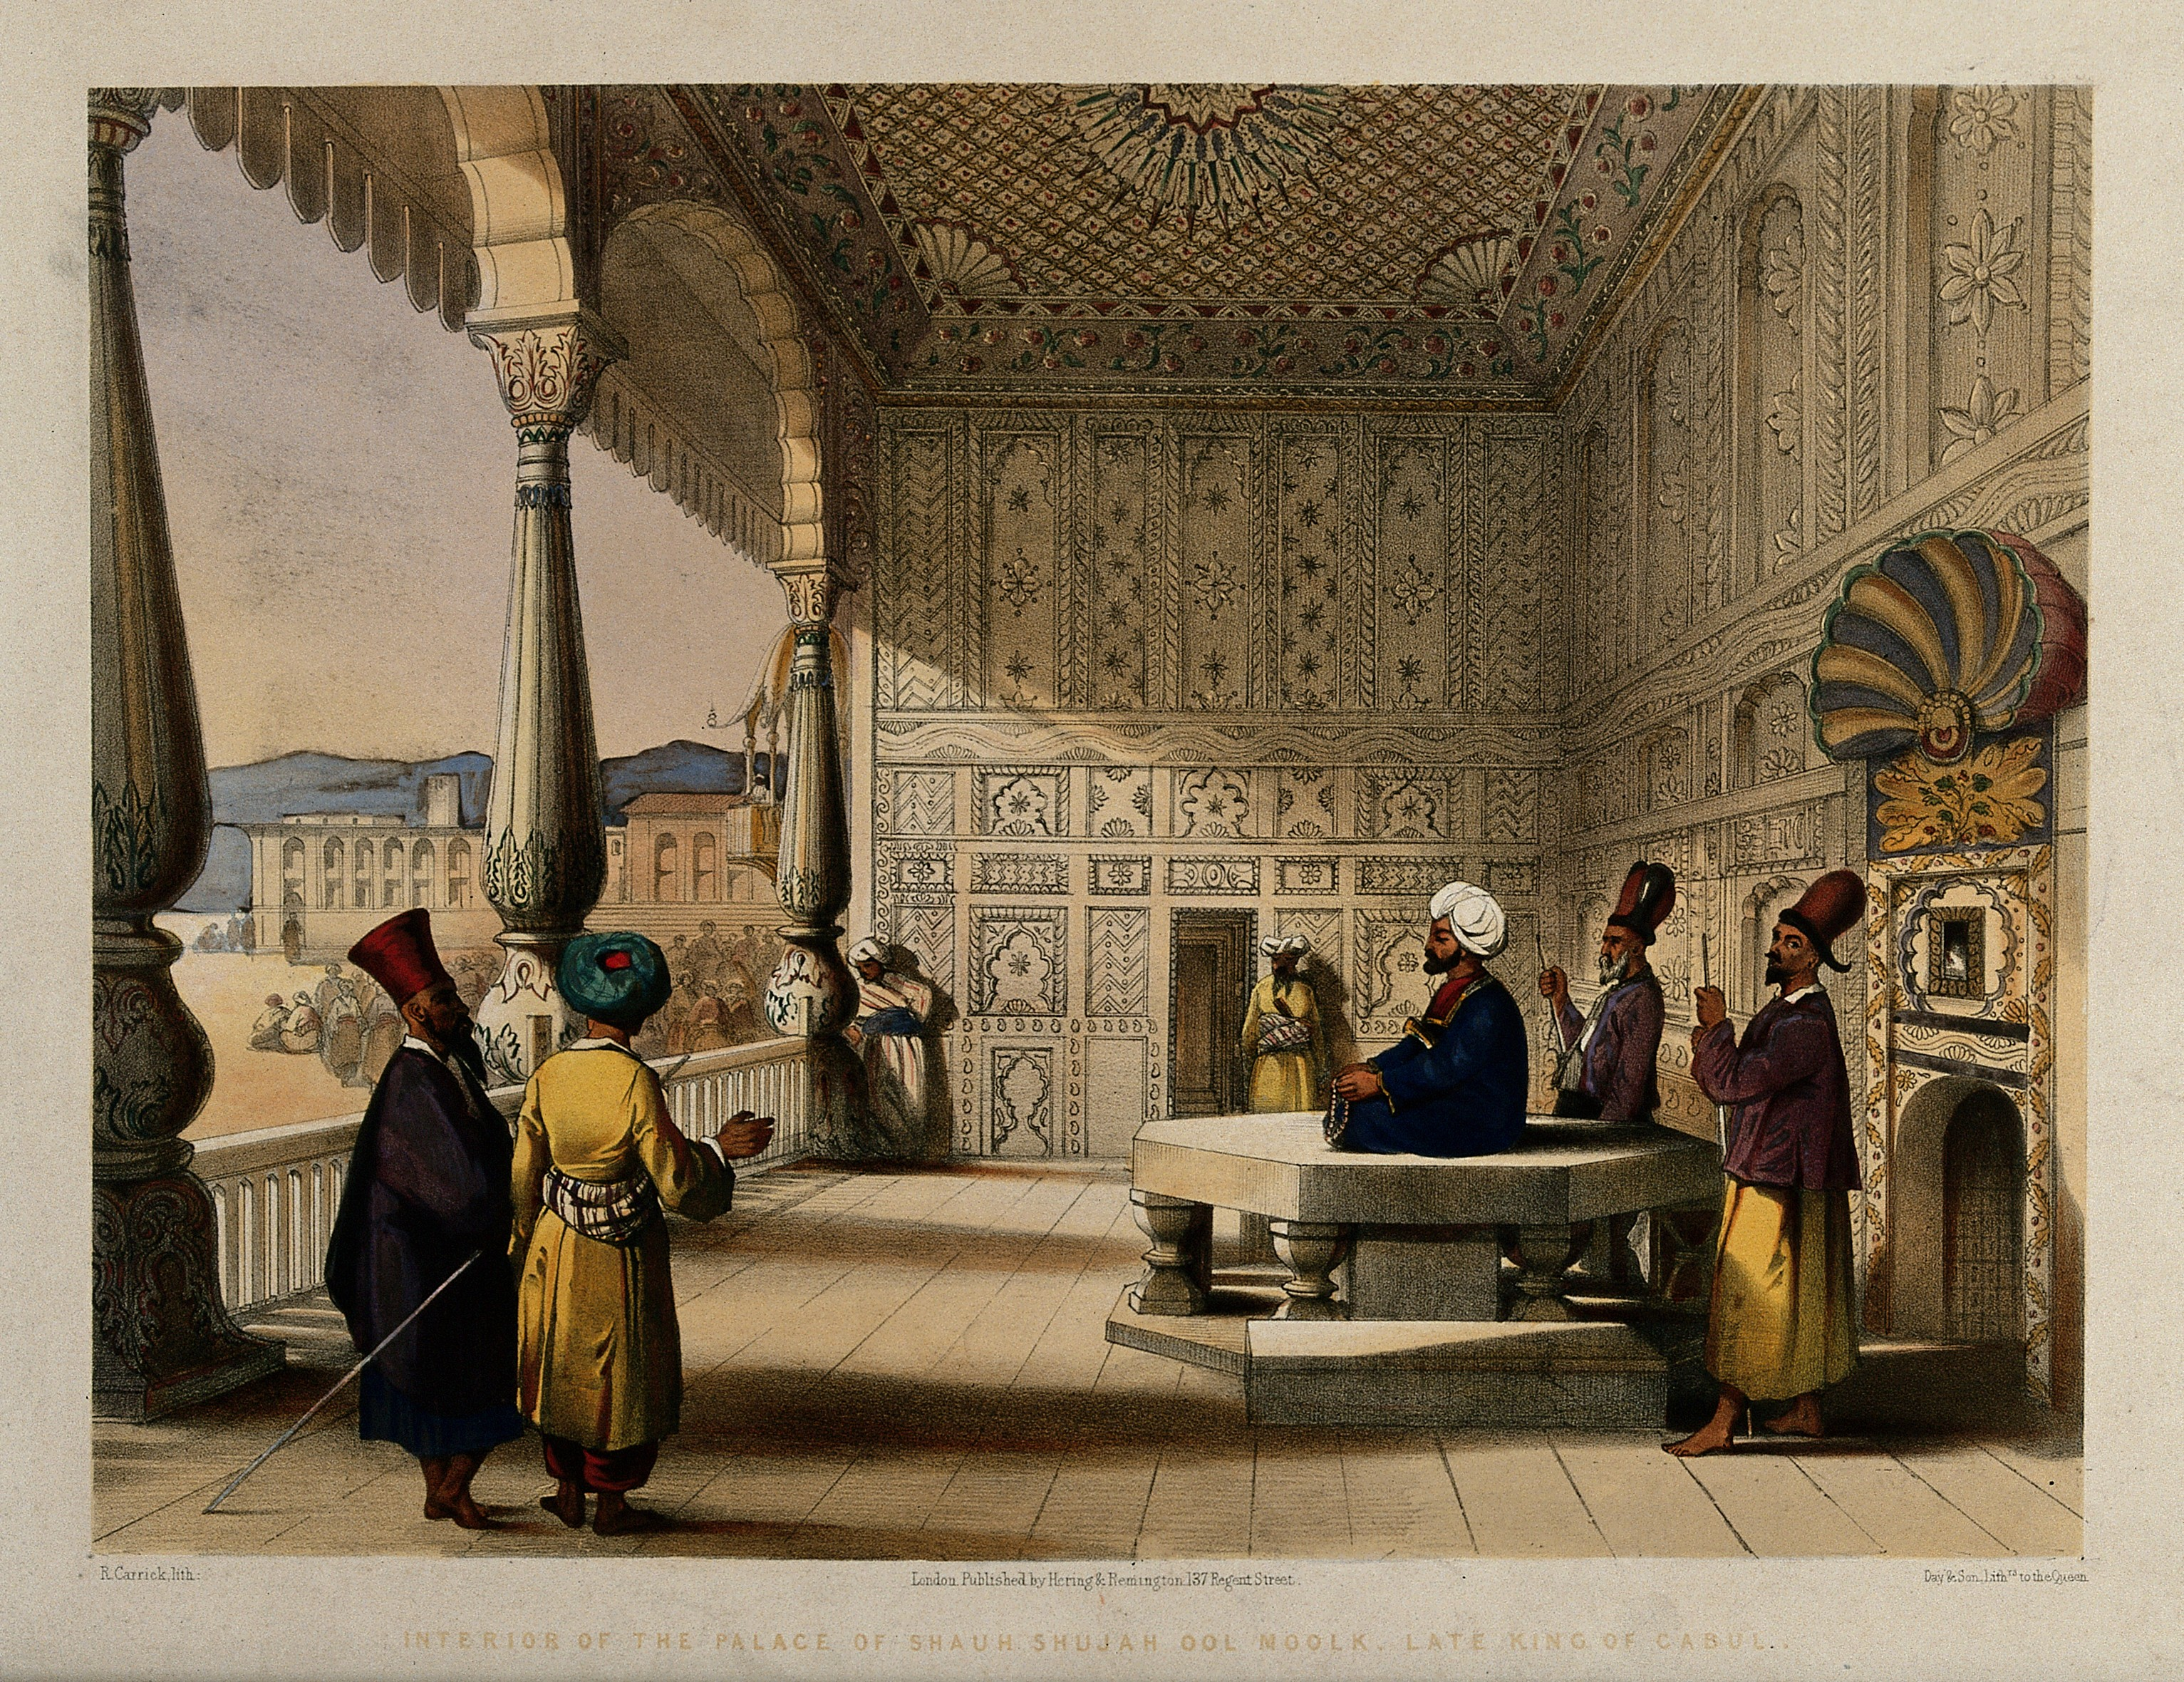 Shuja Shah Durrani and Men in his decorated palace Wellcome V0050531